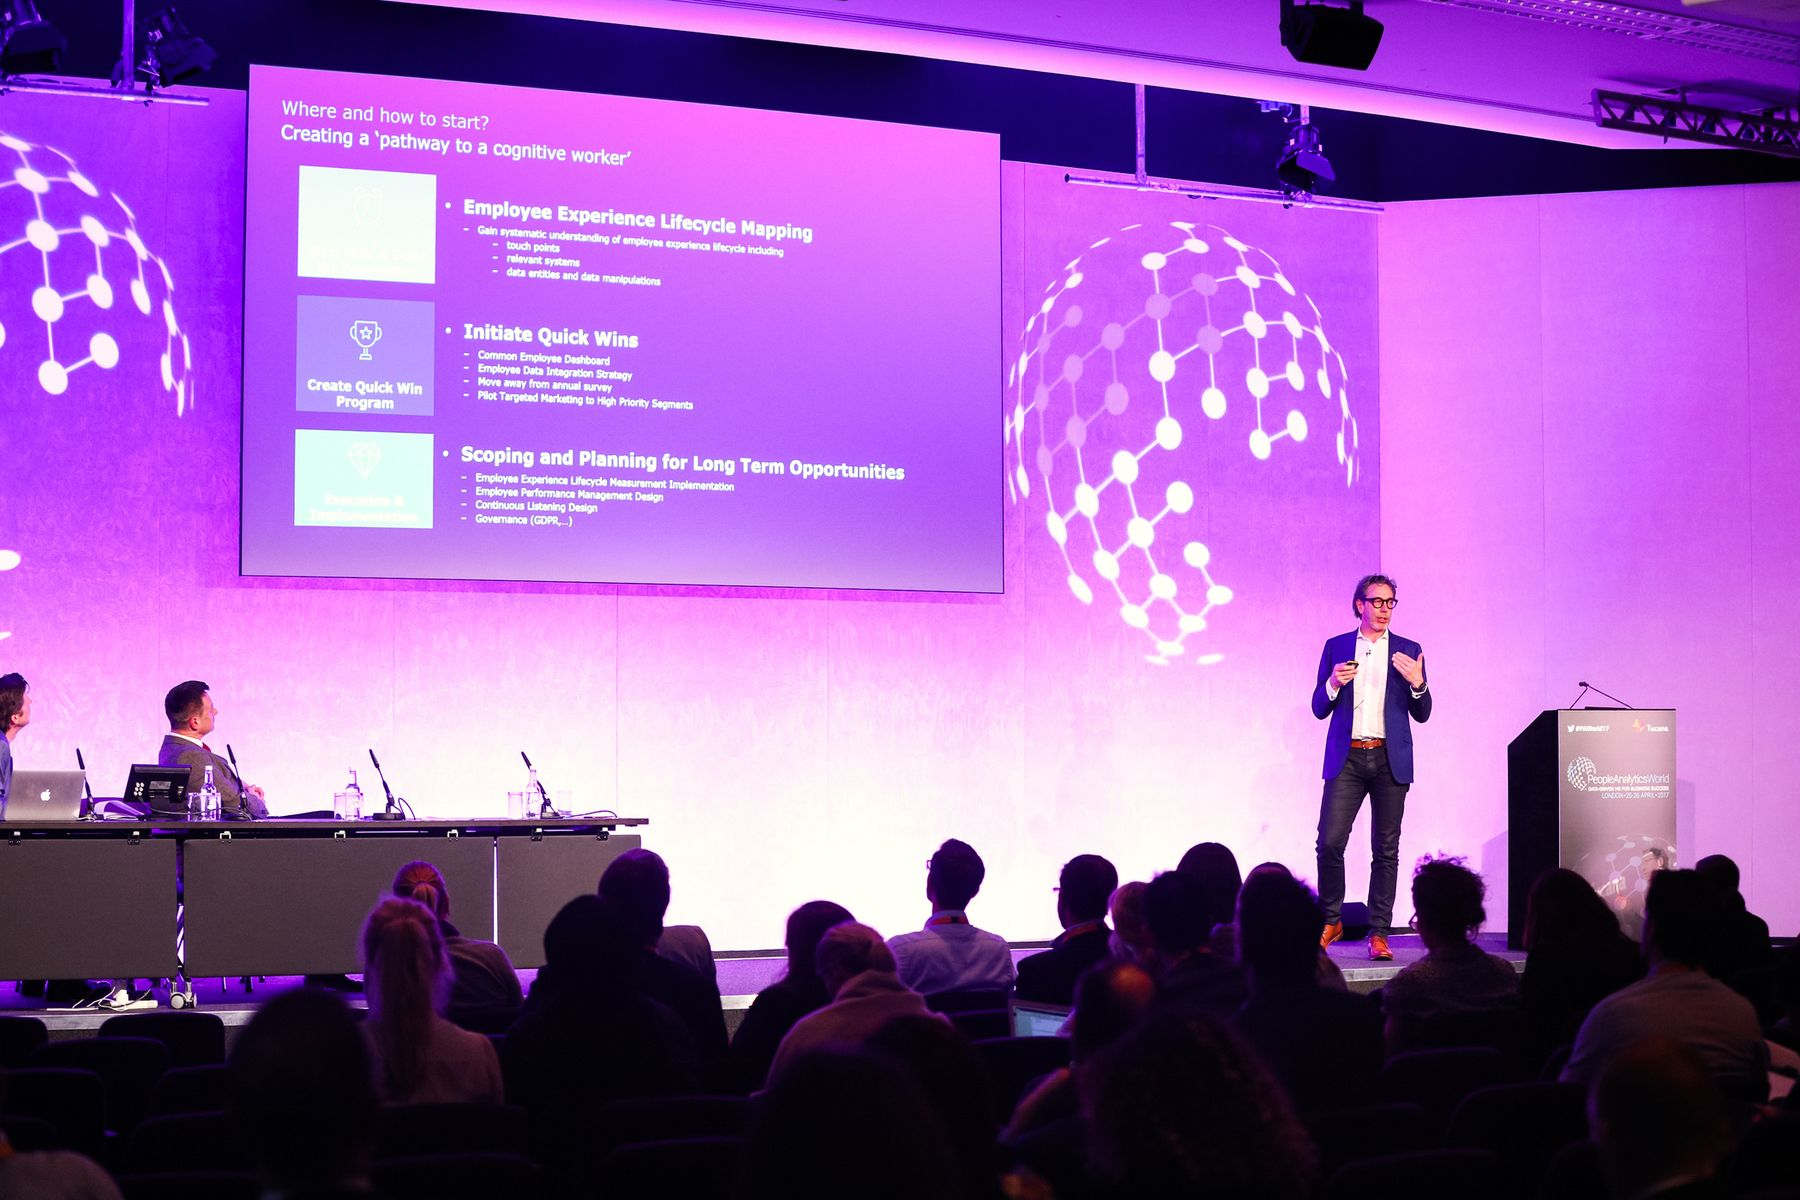 Luk Smeyers presenting at the Tucana People Analytics Conference in London